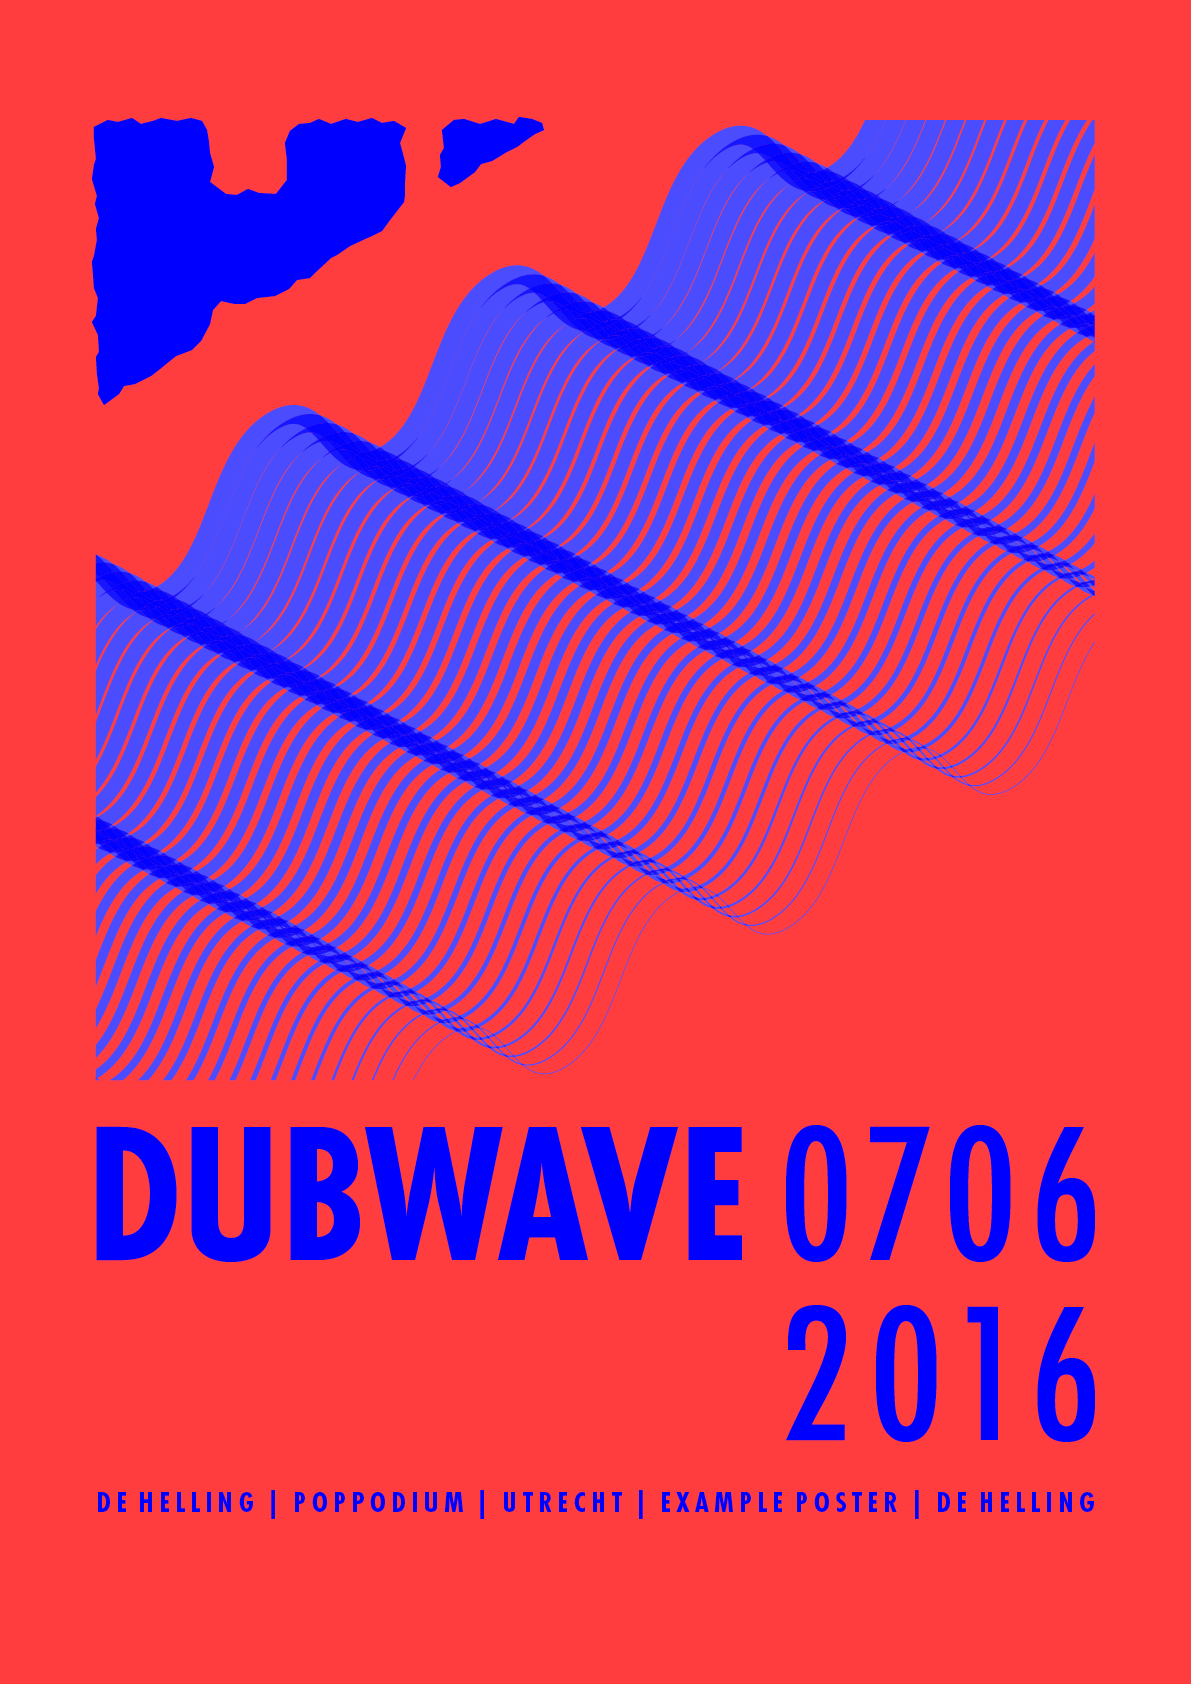 Example poster 'DUBWAVE'